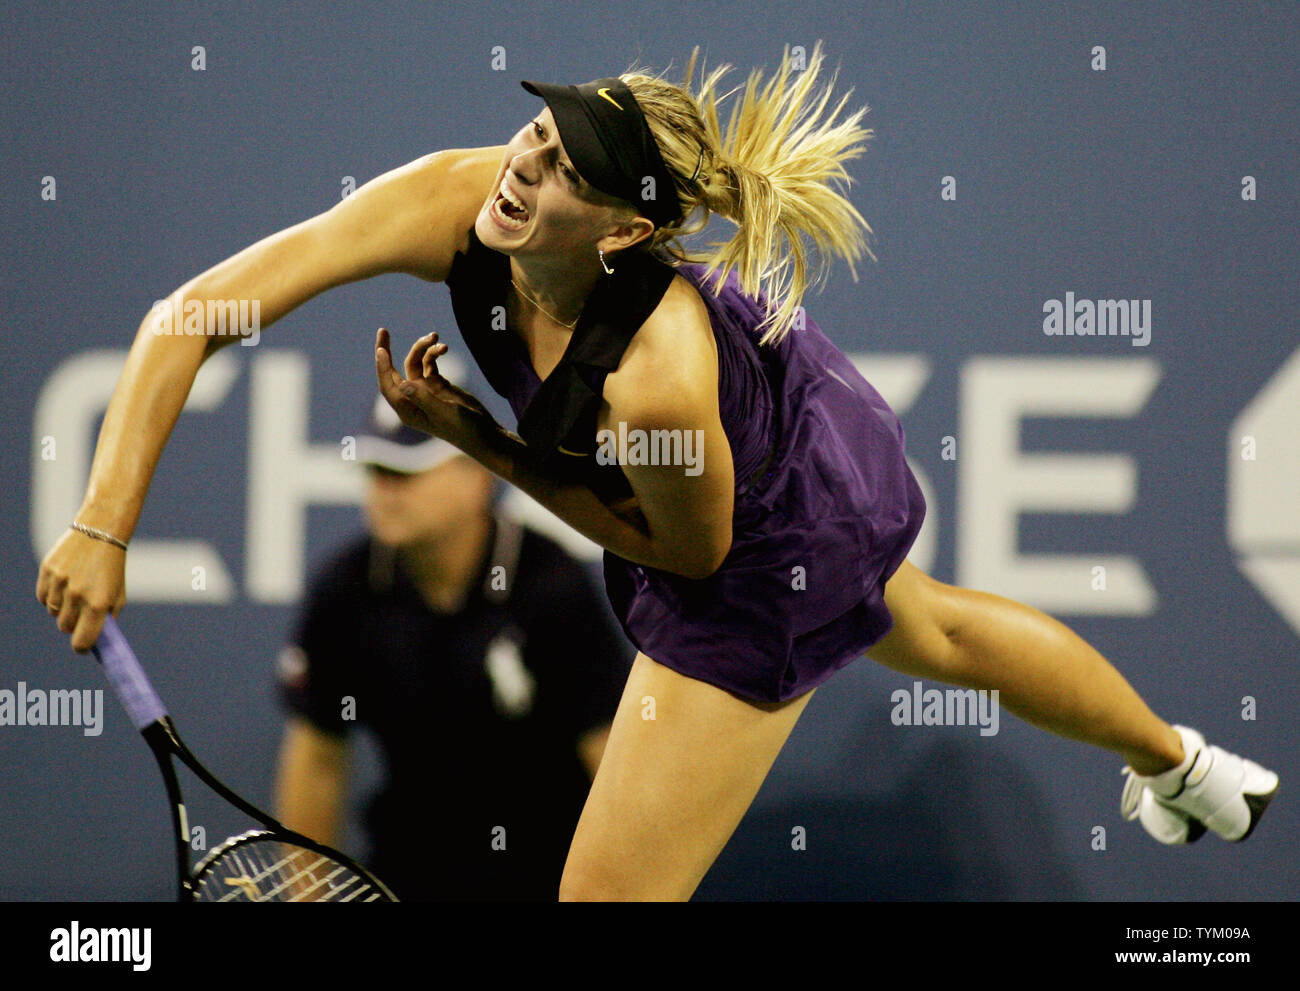 Maria Sharapova of Russia serves to Iveta Benesova of the Czech Republic during second-round action at the U.S. Open held at the National Tennis Center on September 2, 2010 in New York.     UPI Photo/Monika Graff... - Stock Image